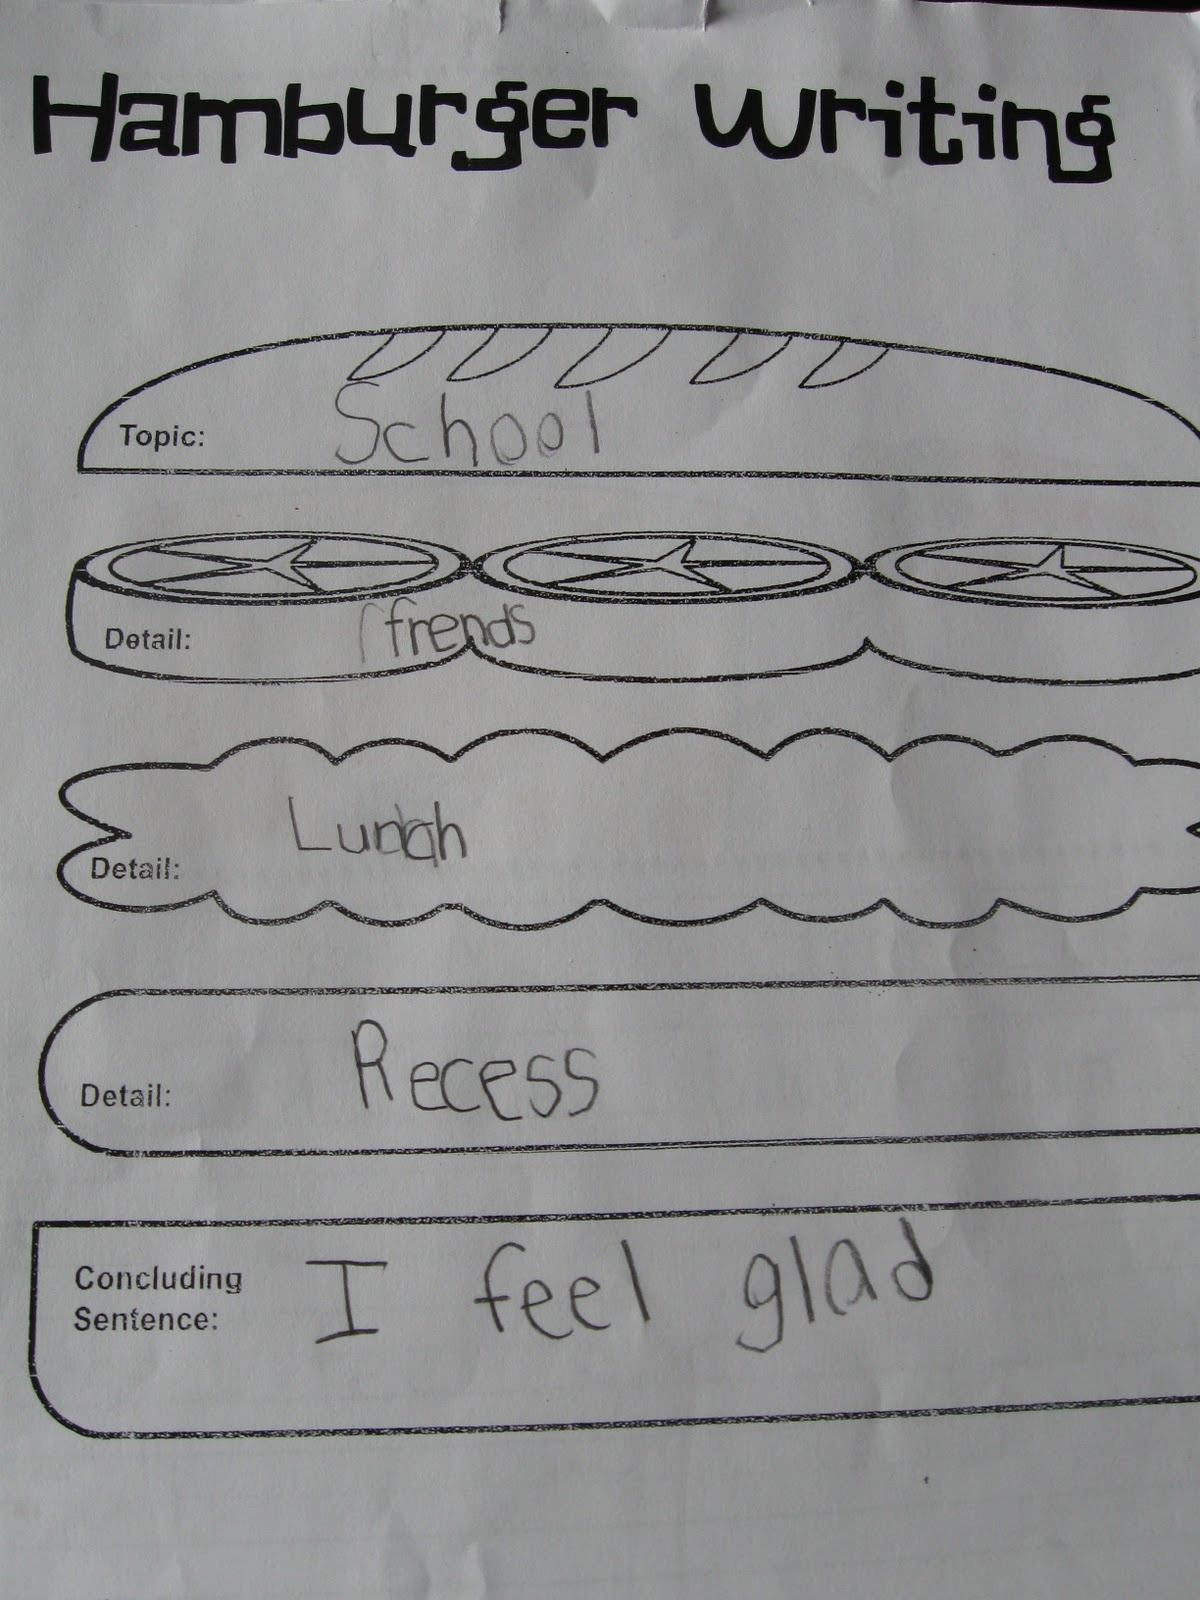 what the teacher wants hamburger writing hamburger writing